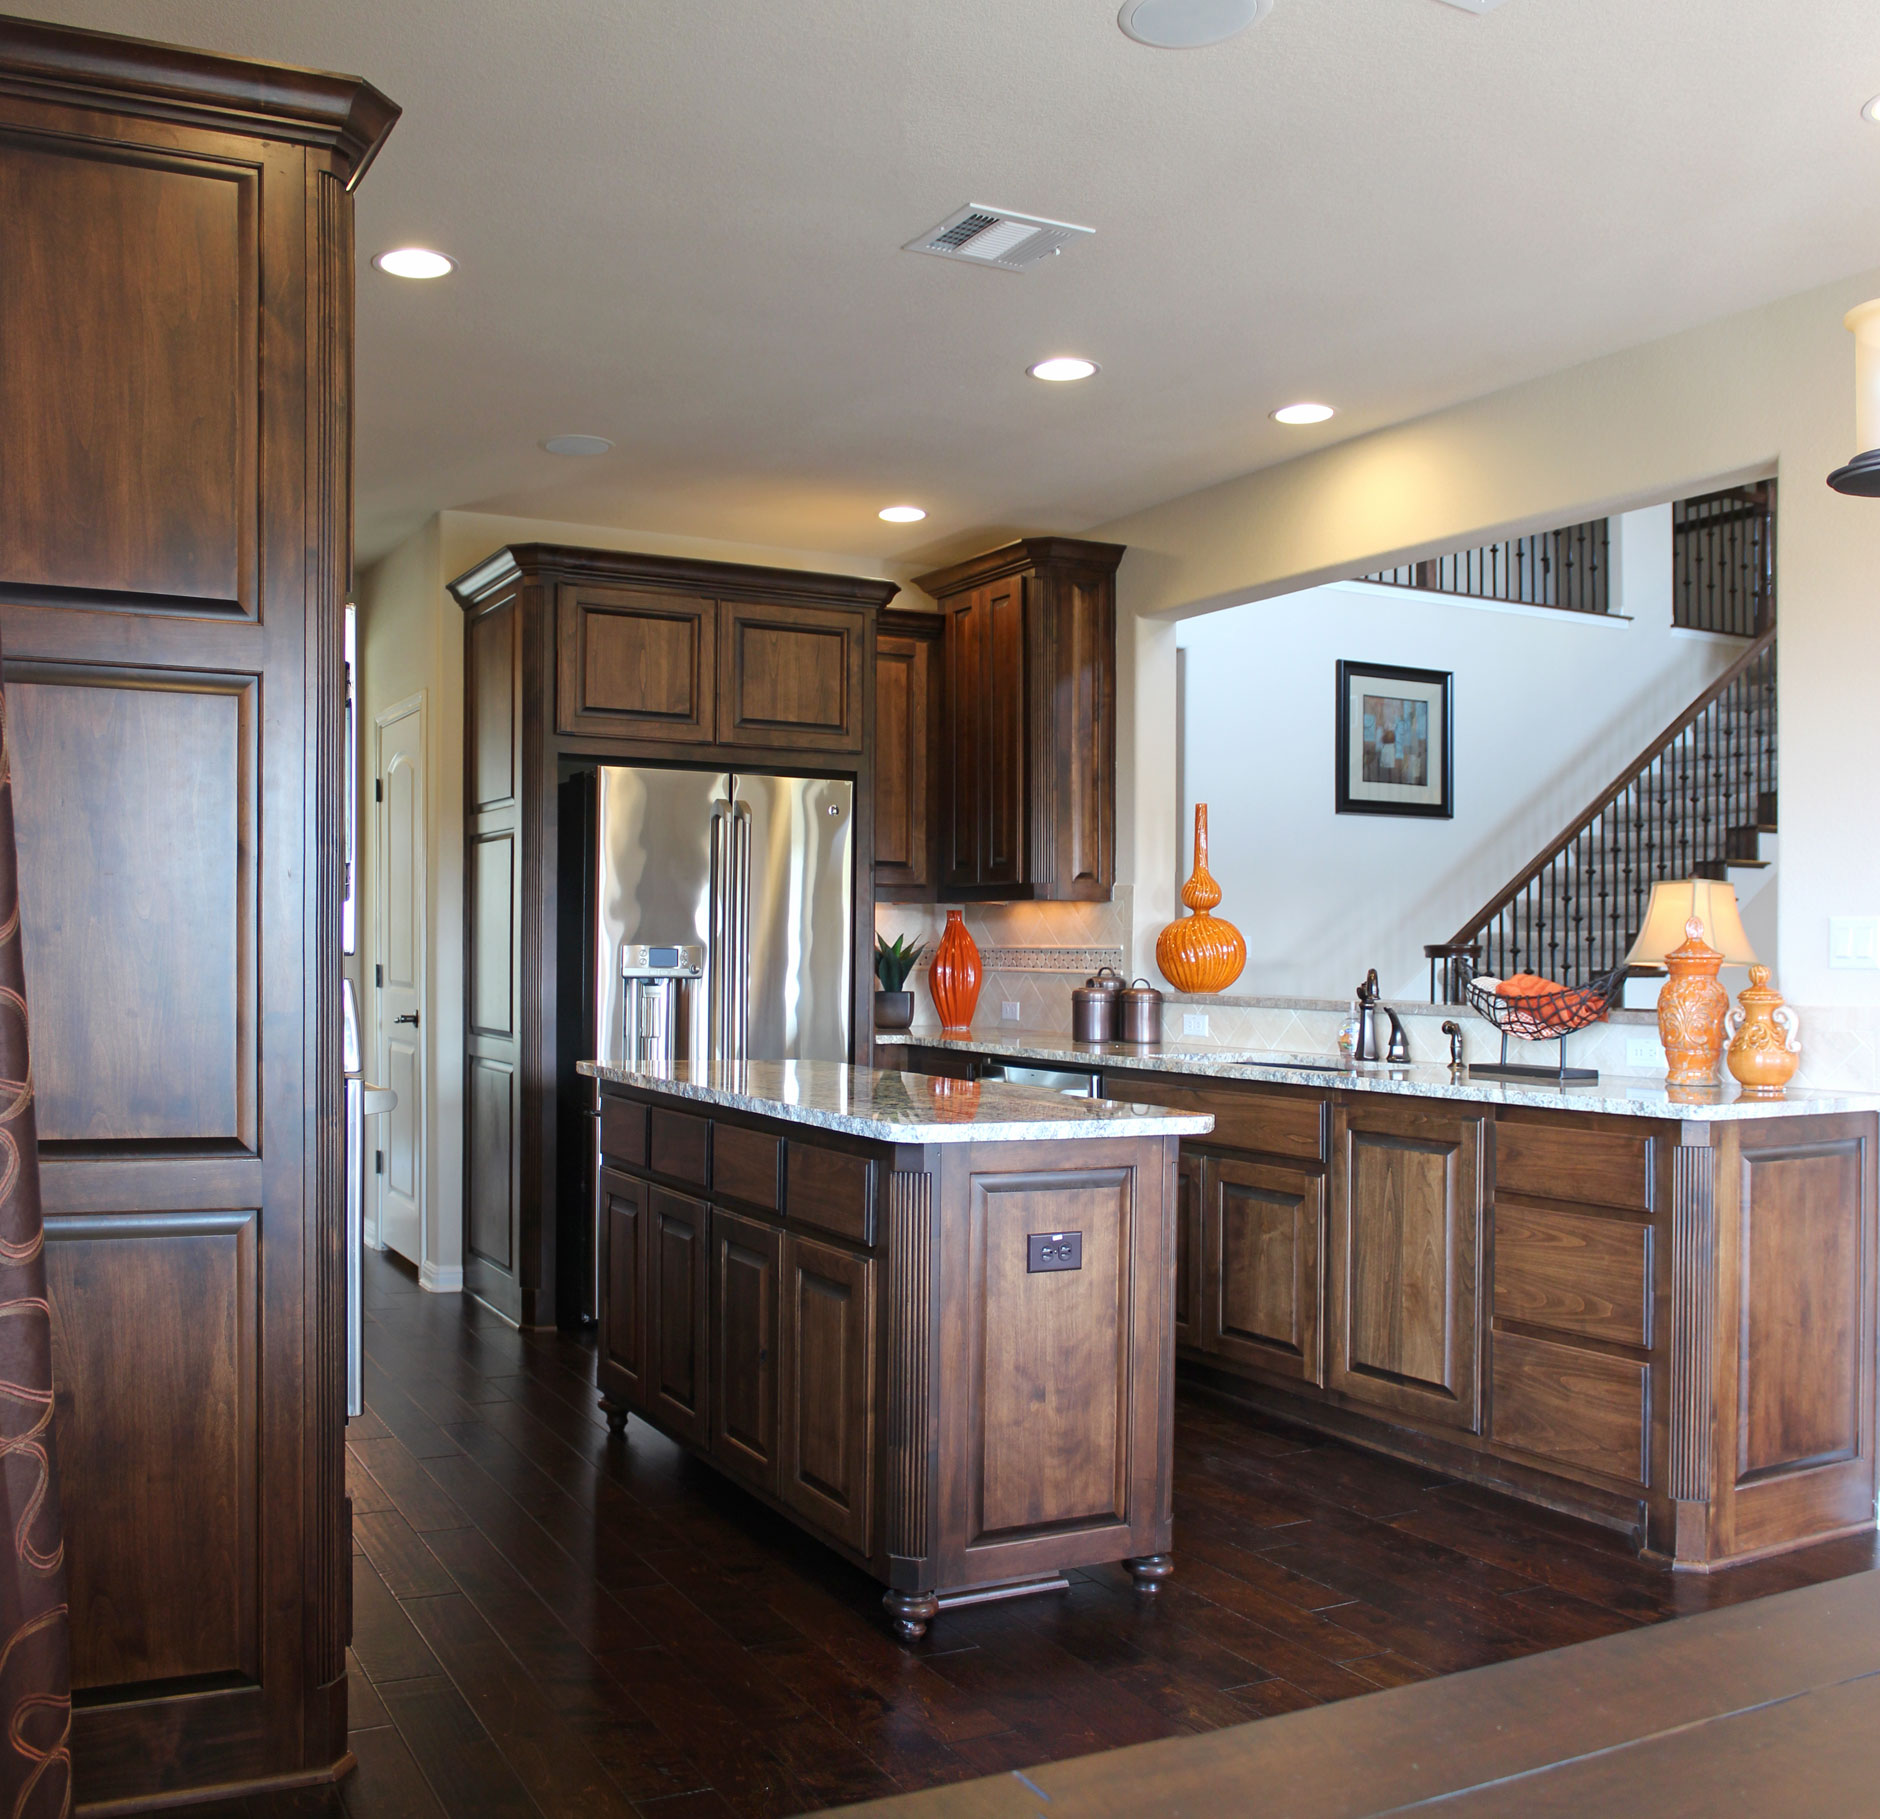 Burrows Cabinets kitchen in stained knotty alder and appliance end panels